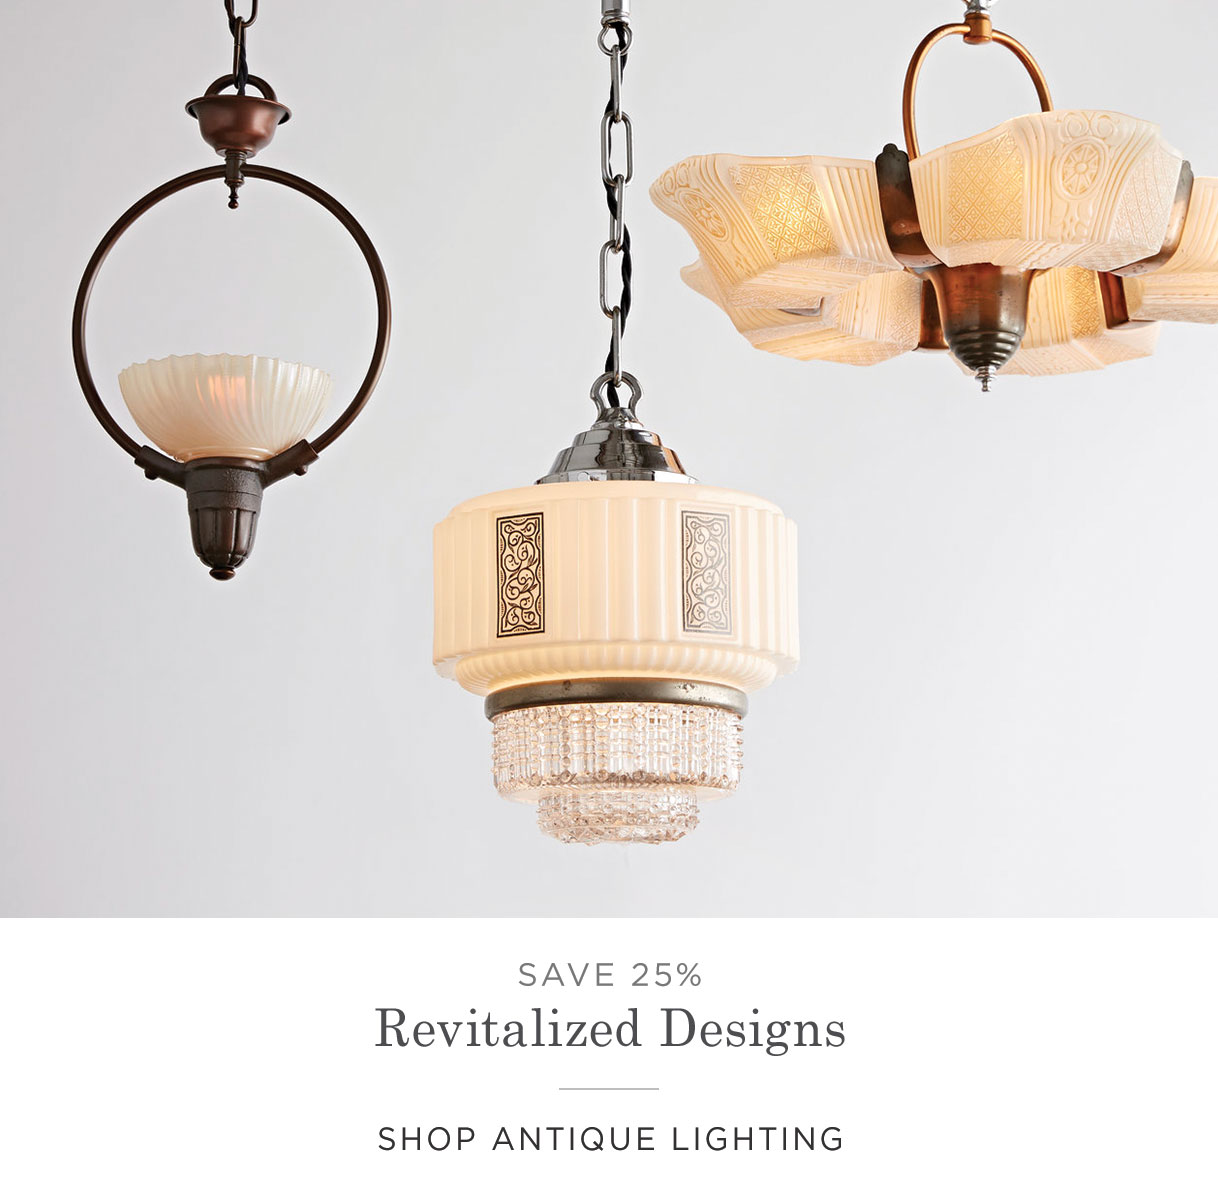 Shop Antique Lighting